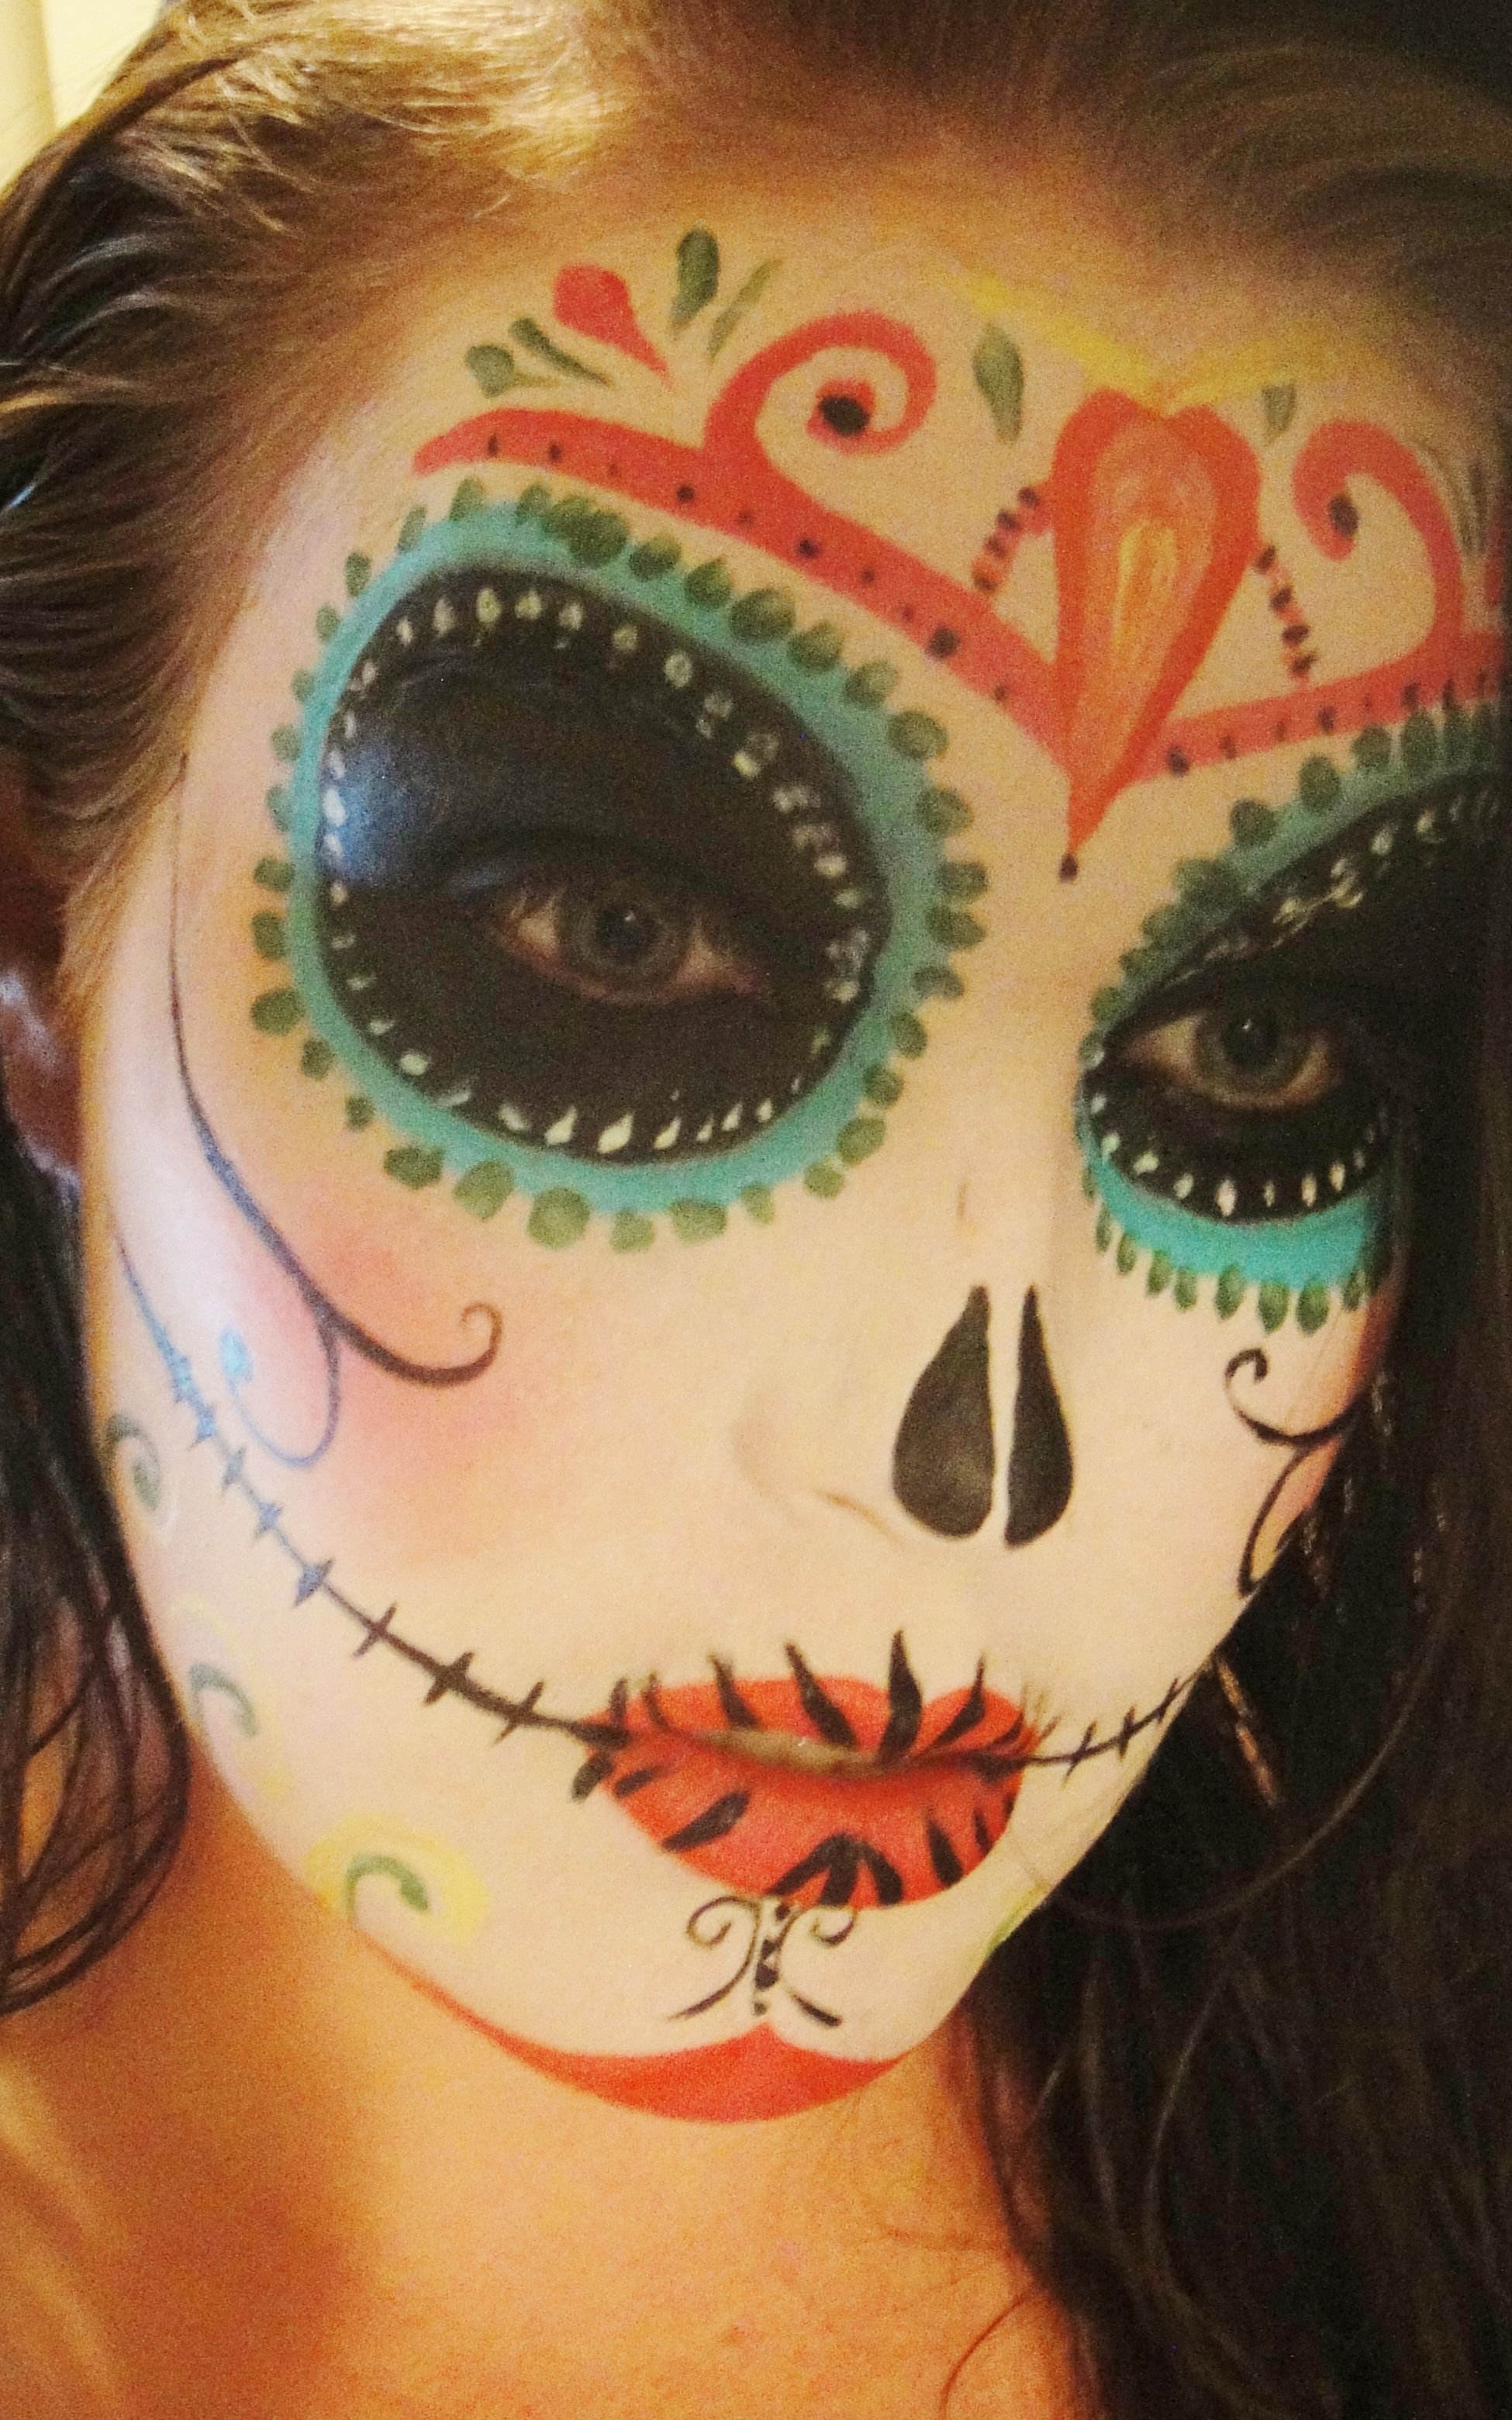 sugar skull Day of the dead Halloween cool creepy mysterious